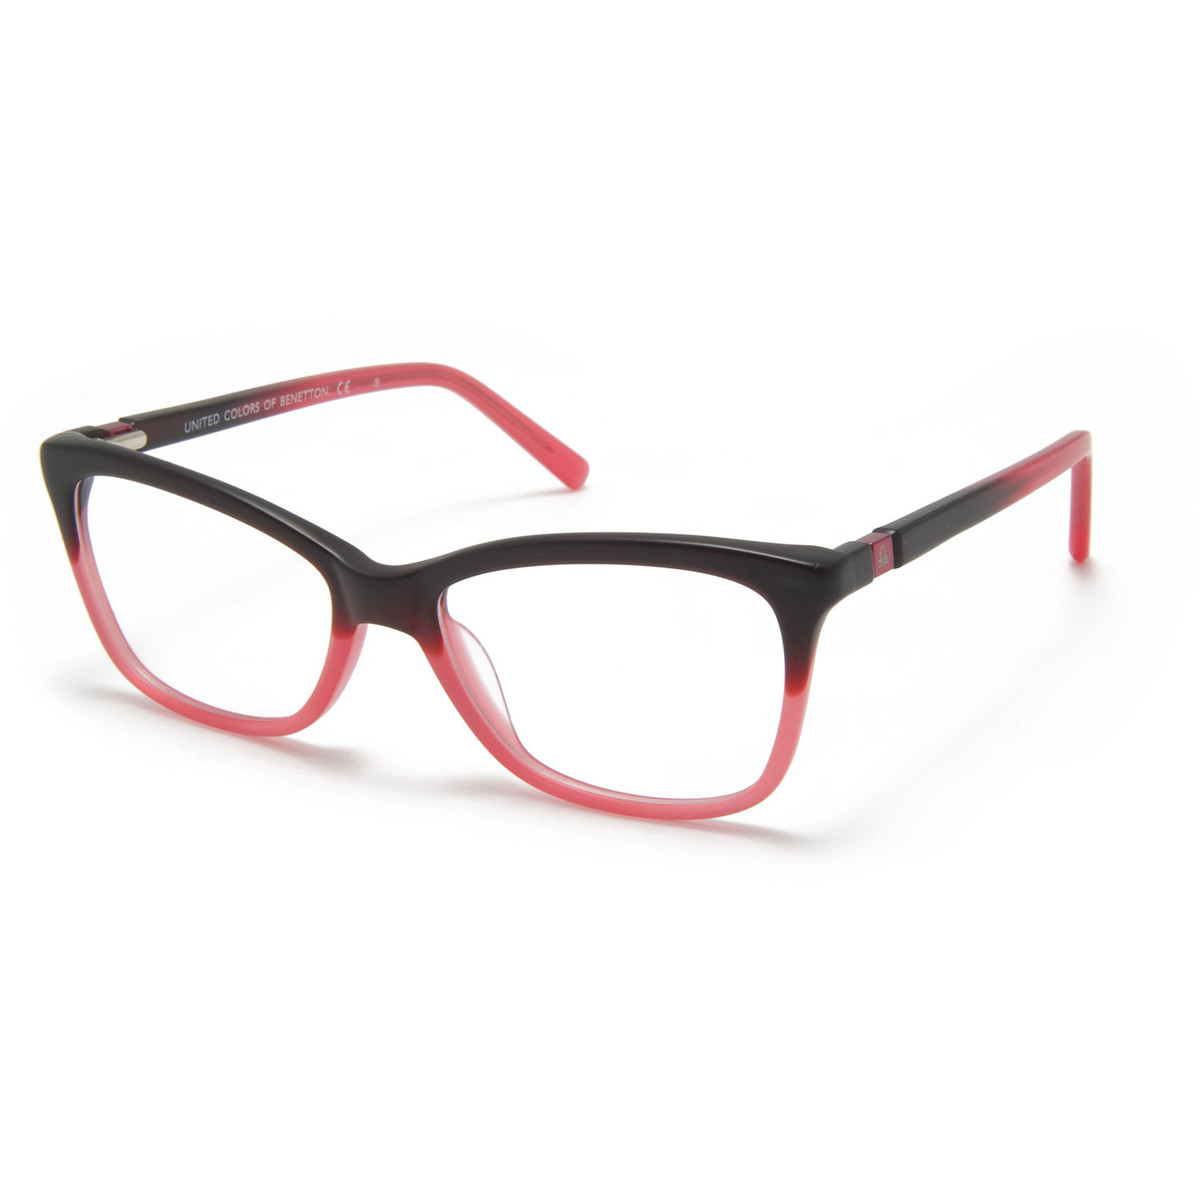 Rame ochelari vedere dama UNITED COLORS OF BENETTON BN250V02 de la United Colors of Benetton